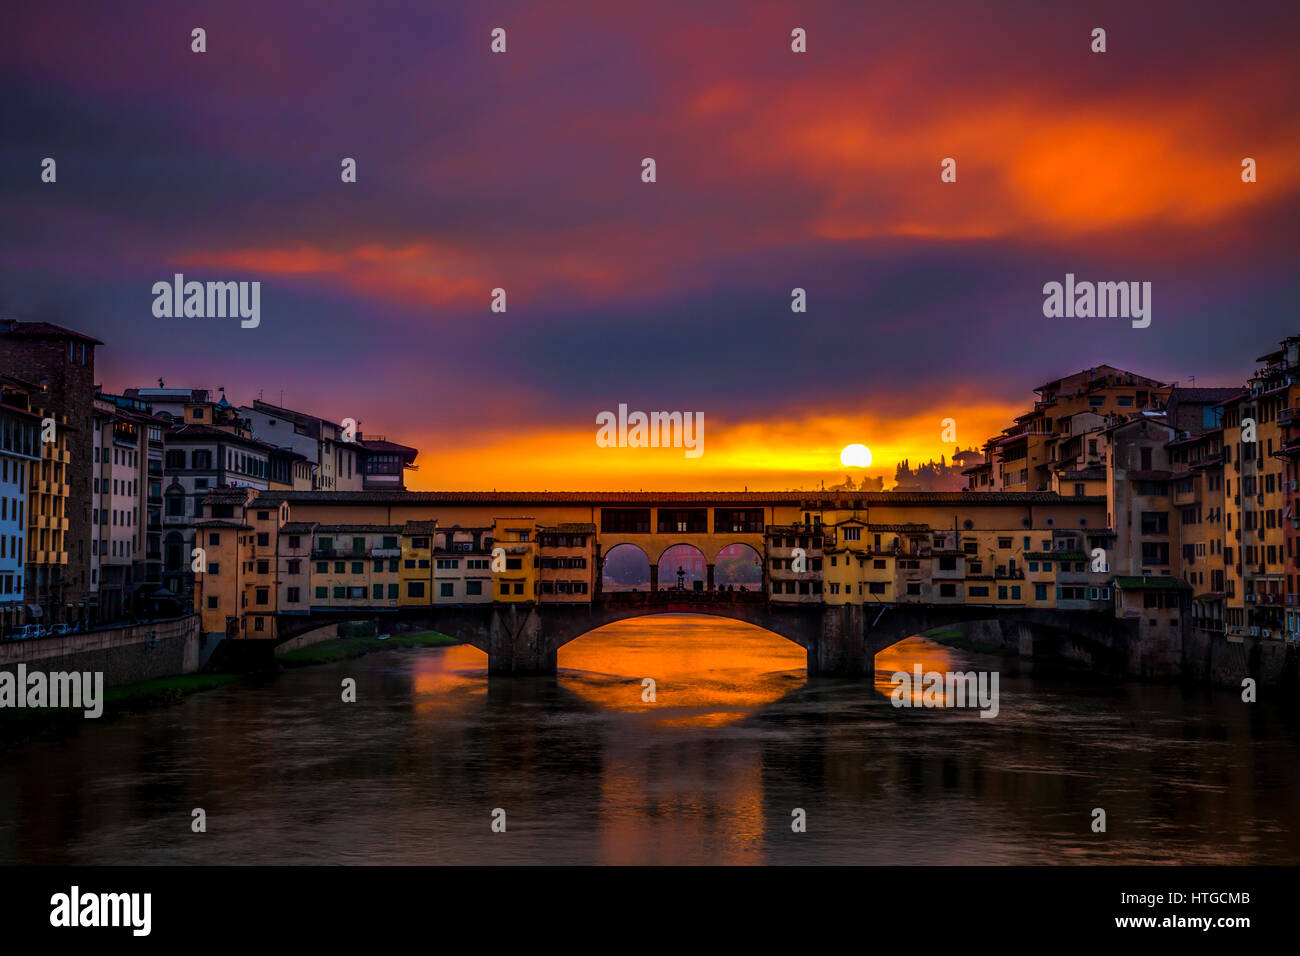 Clearing storm clouds at dawn create a dramatic sunrise over the Ponte Vecchio bridge in Florence, Italy with the - Stock Image